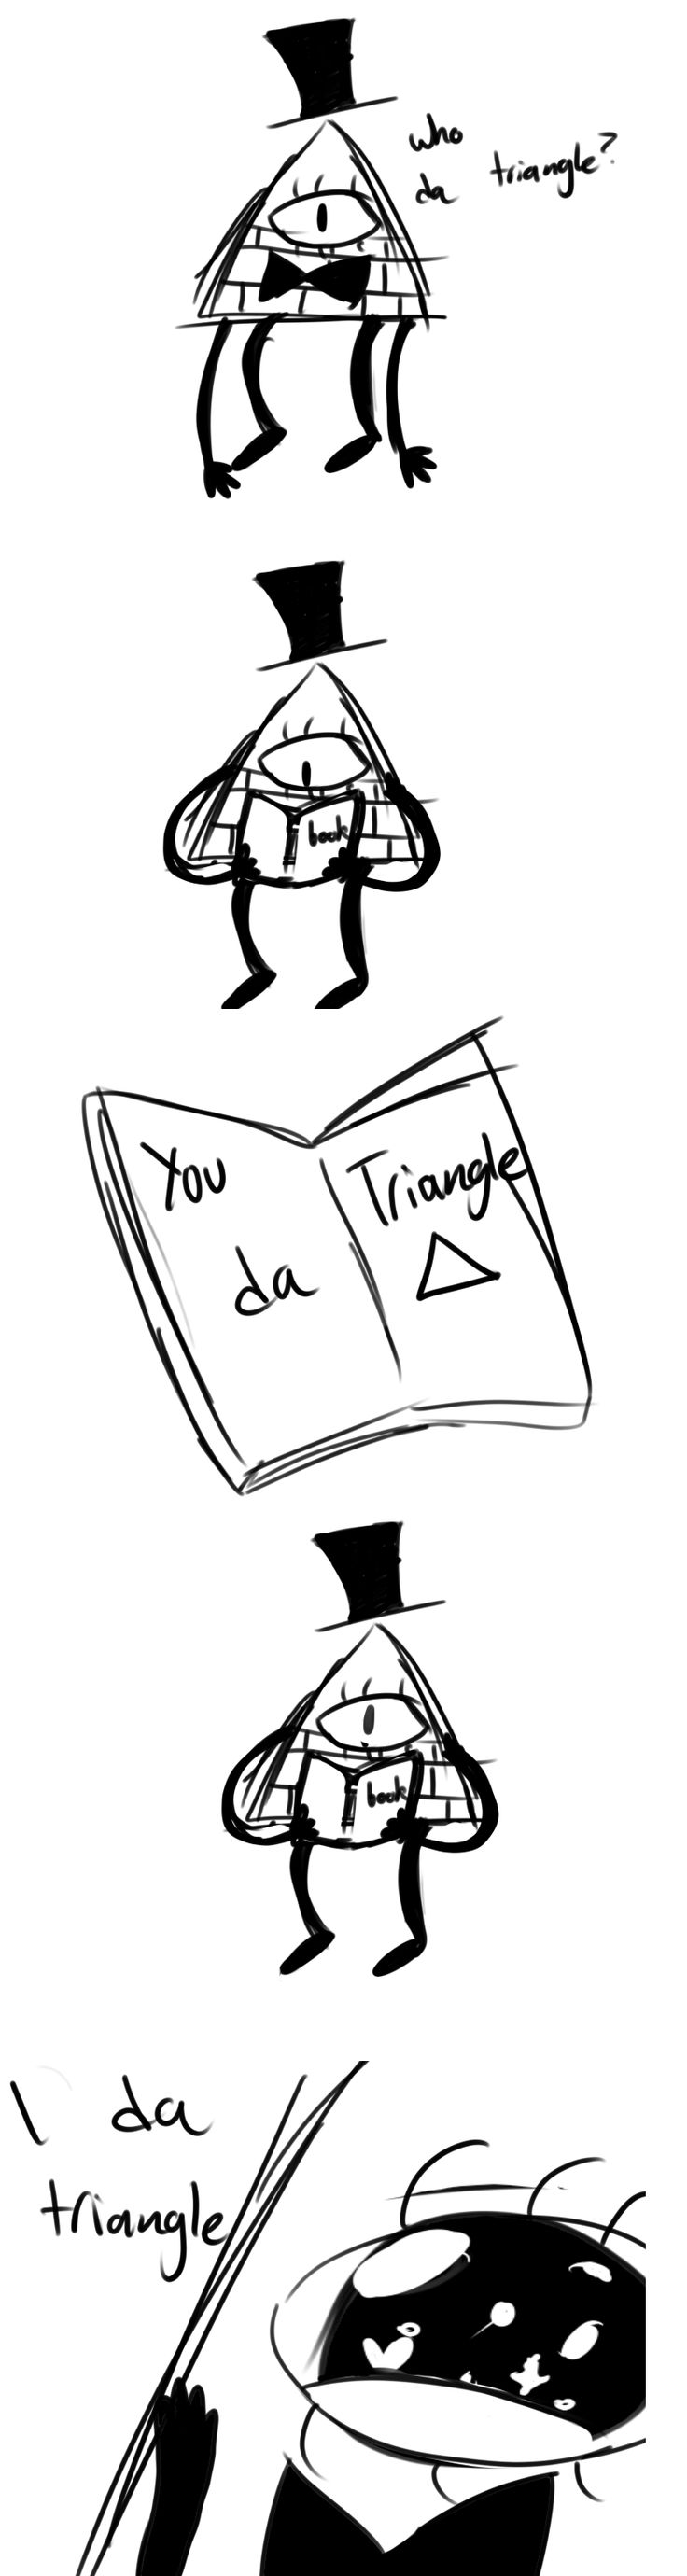 You da triangle by M-alfunction-ing.deviantart.com on @deviantART